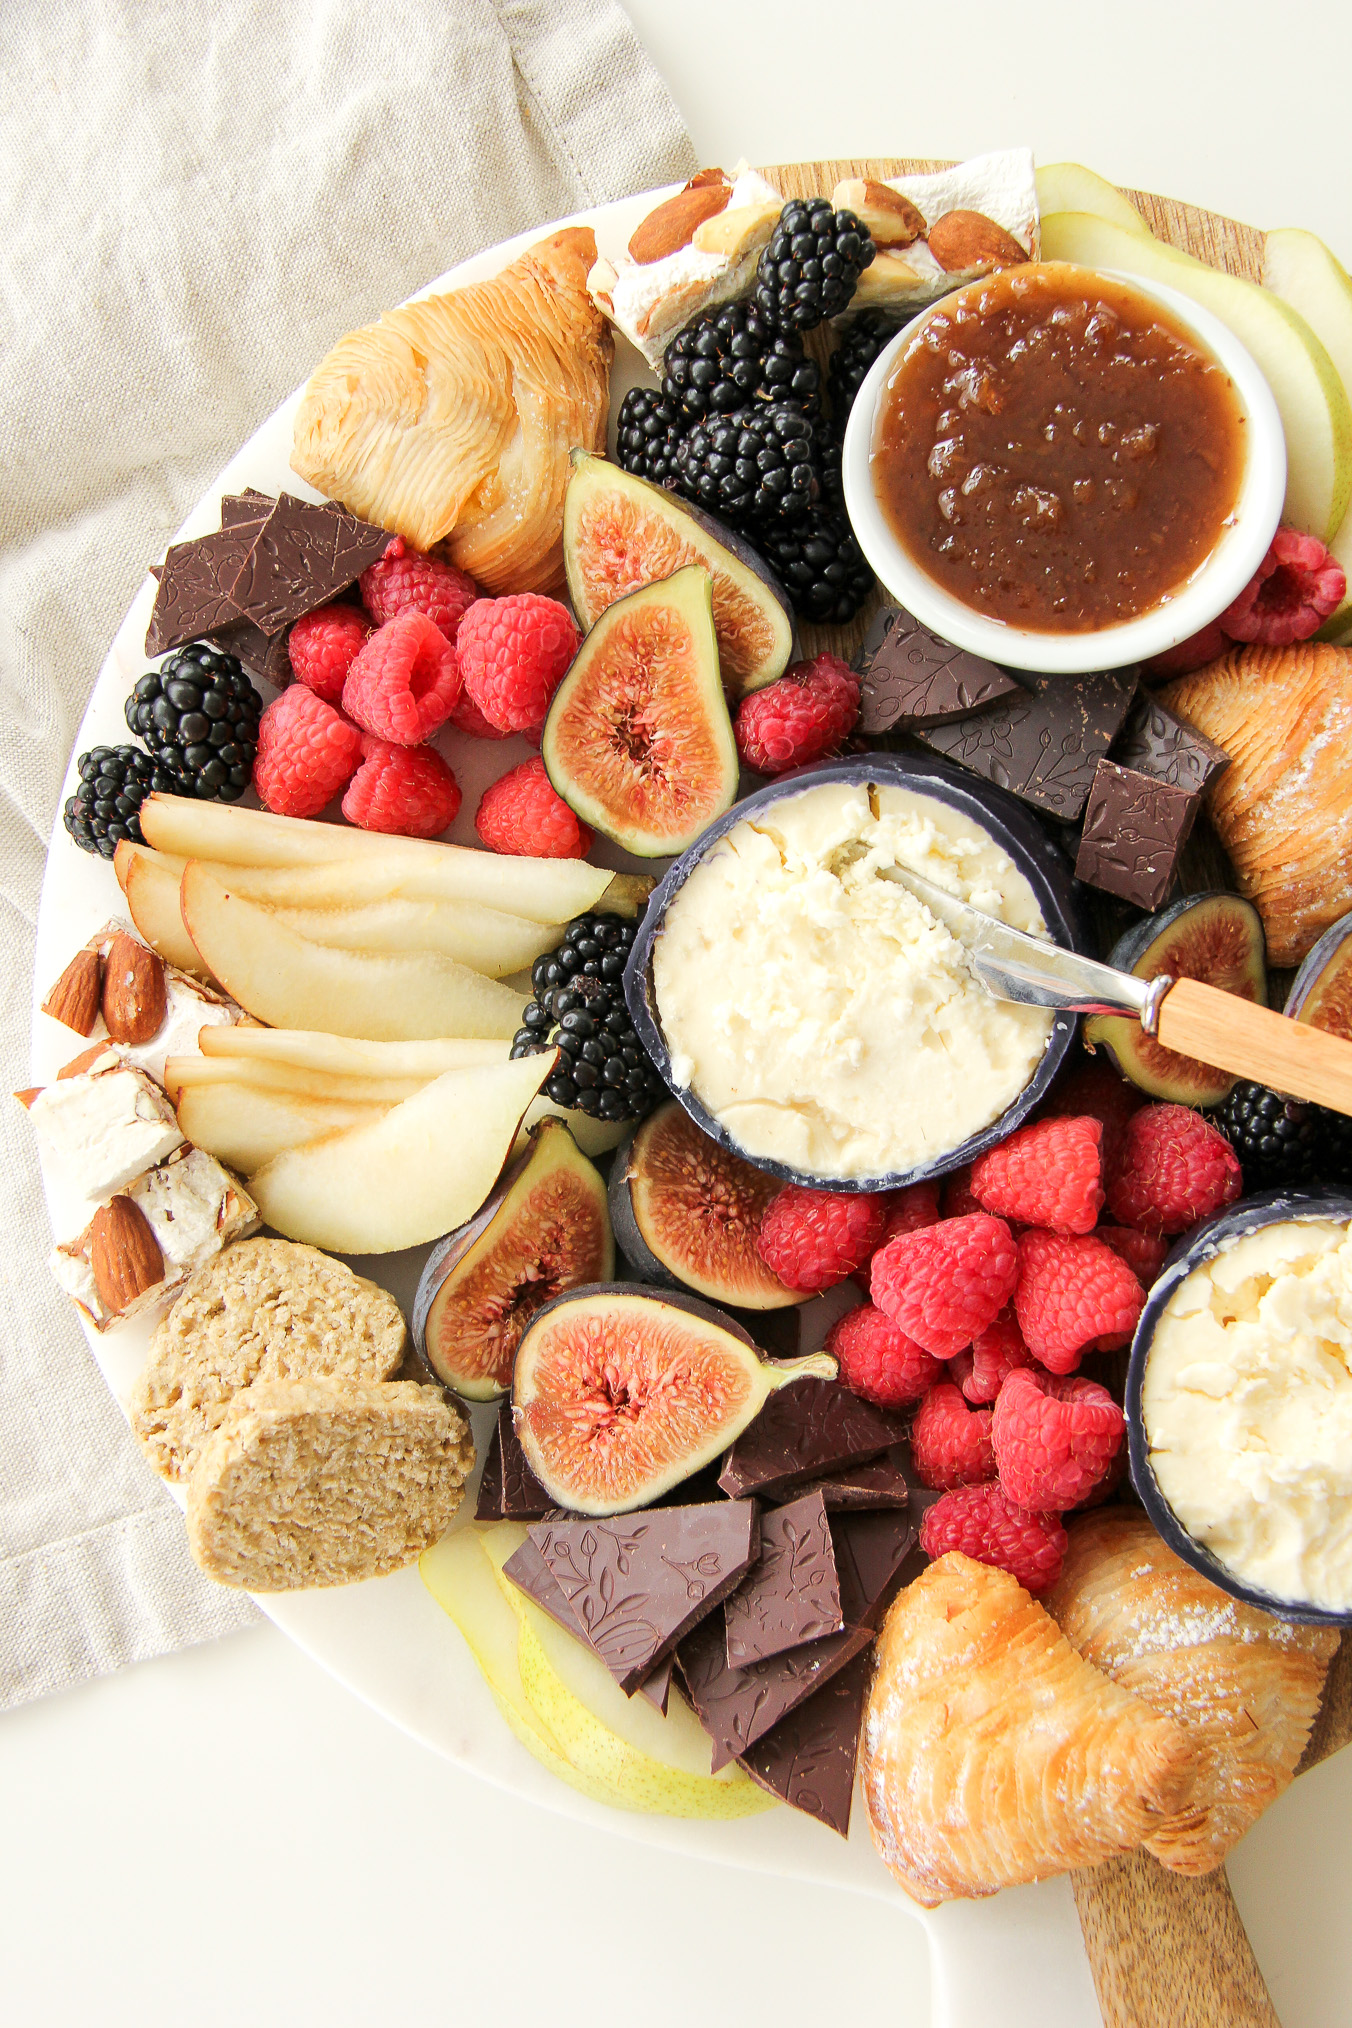 Dessert Cheese Plate & Dessert Cheese Plate - A Pretty Life In The Suburbs